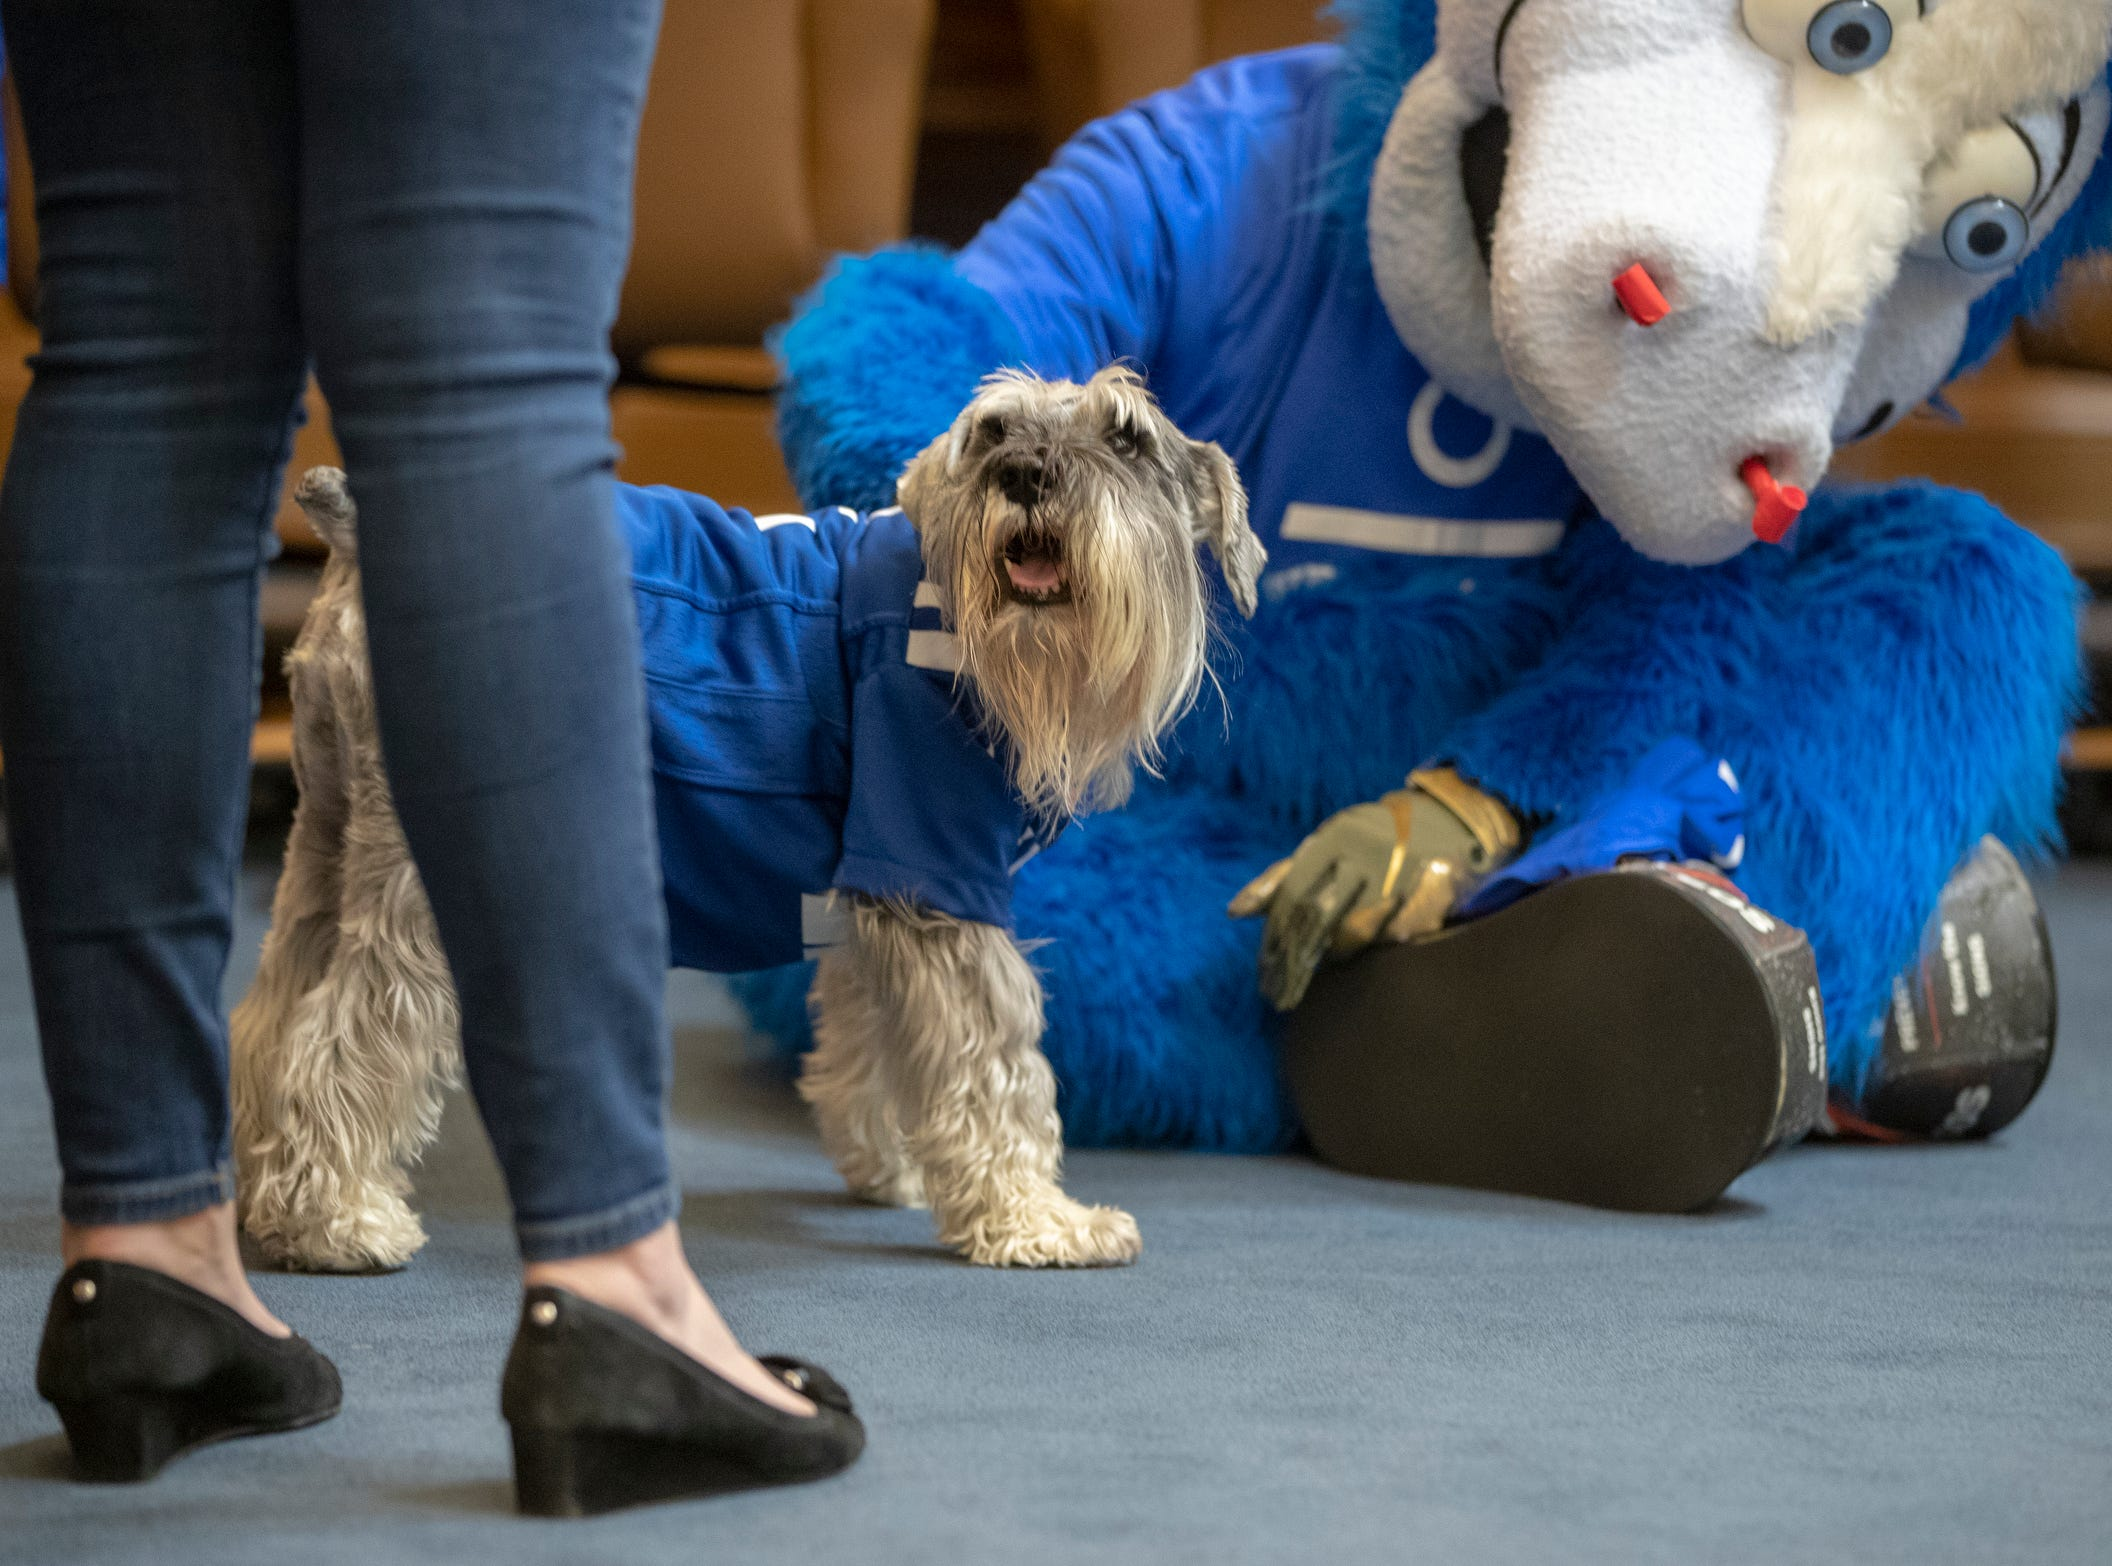 Blue, the Colts mascot, visits with Henry, Indiana's first dog, at the Governor's office at the Indiana Statehouse, Indianapolis, Wednesday, January 3, 2019. Blue had paid a visit to send cheer in advance of the team's Wild Card game this weekend in Houston.